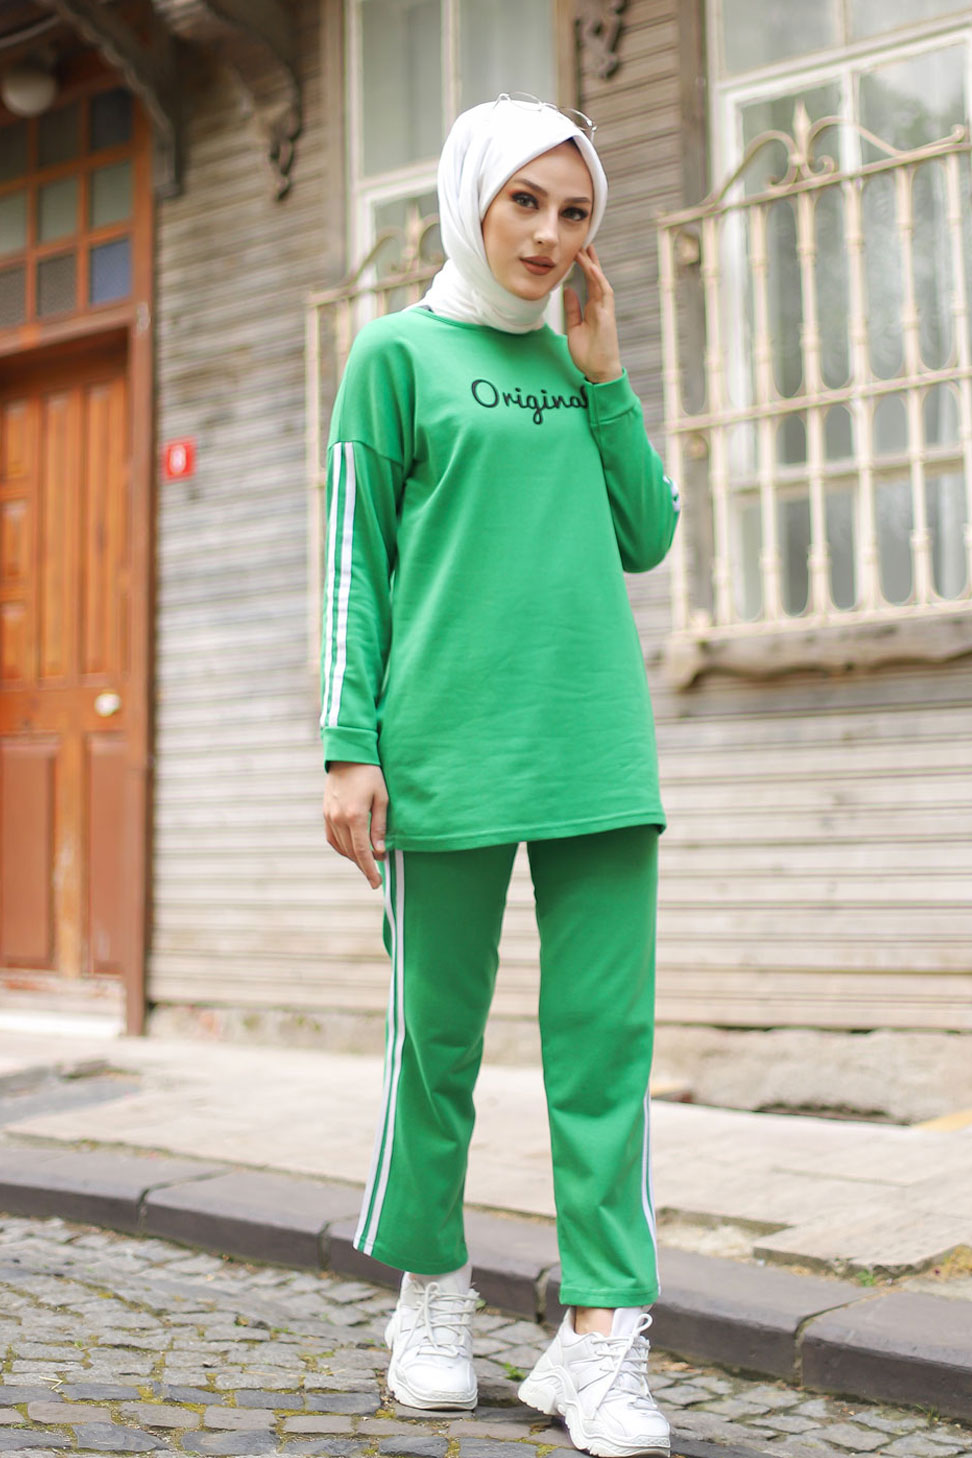 Tunic and Pants Green طقم توينك اخضر - 8401 - meesk